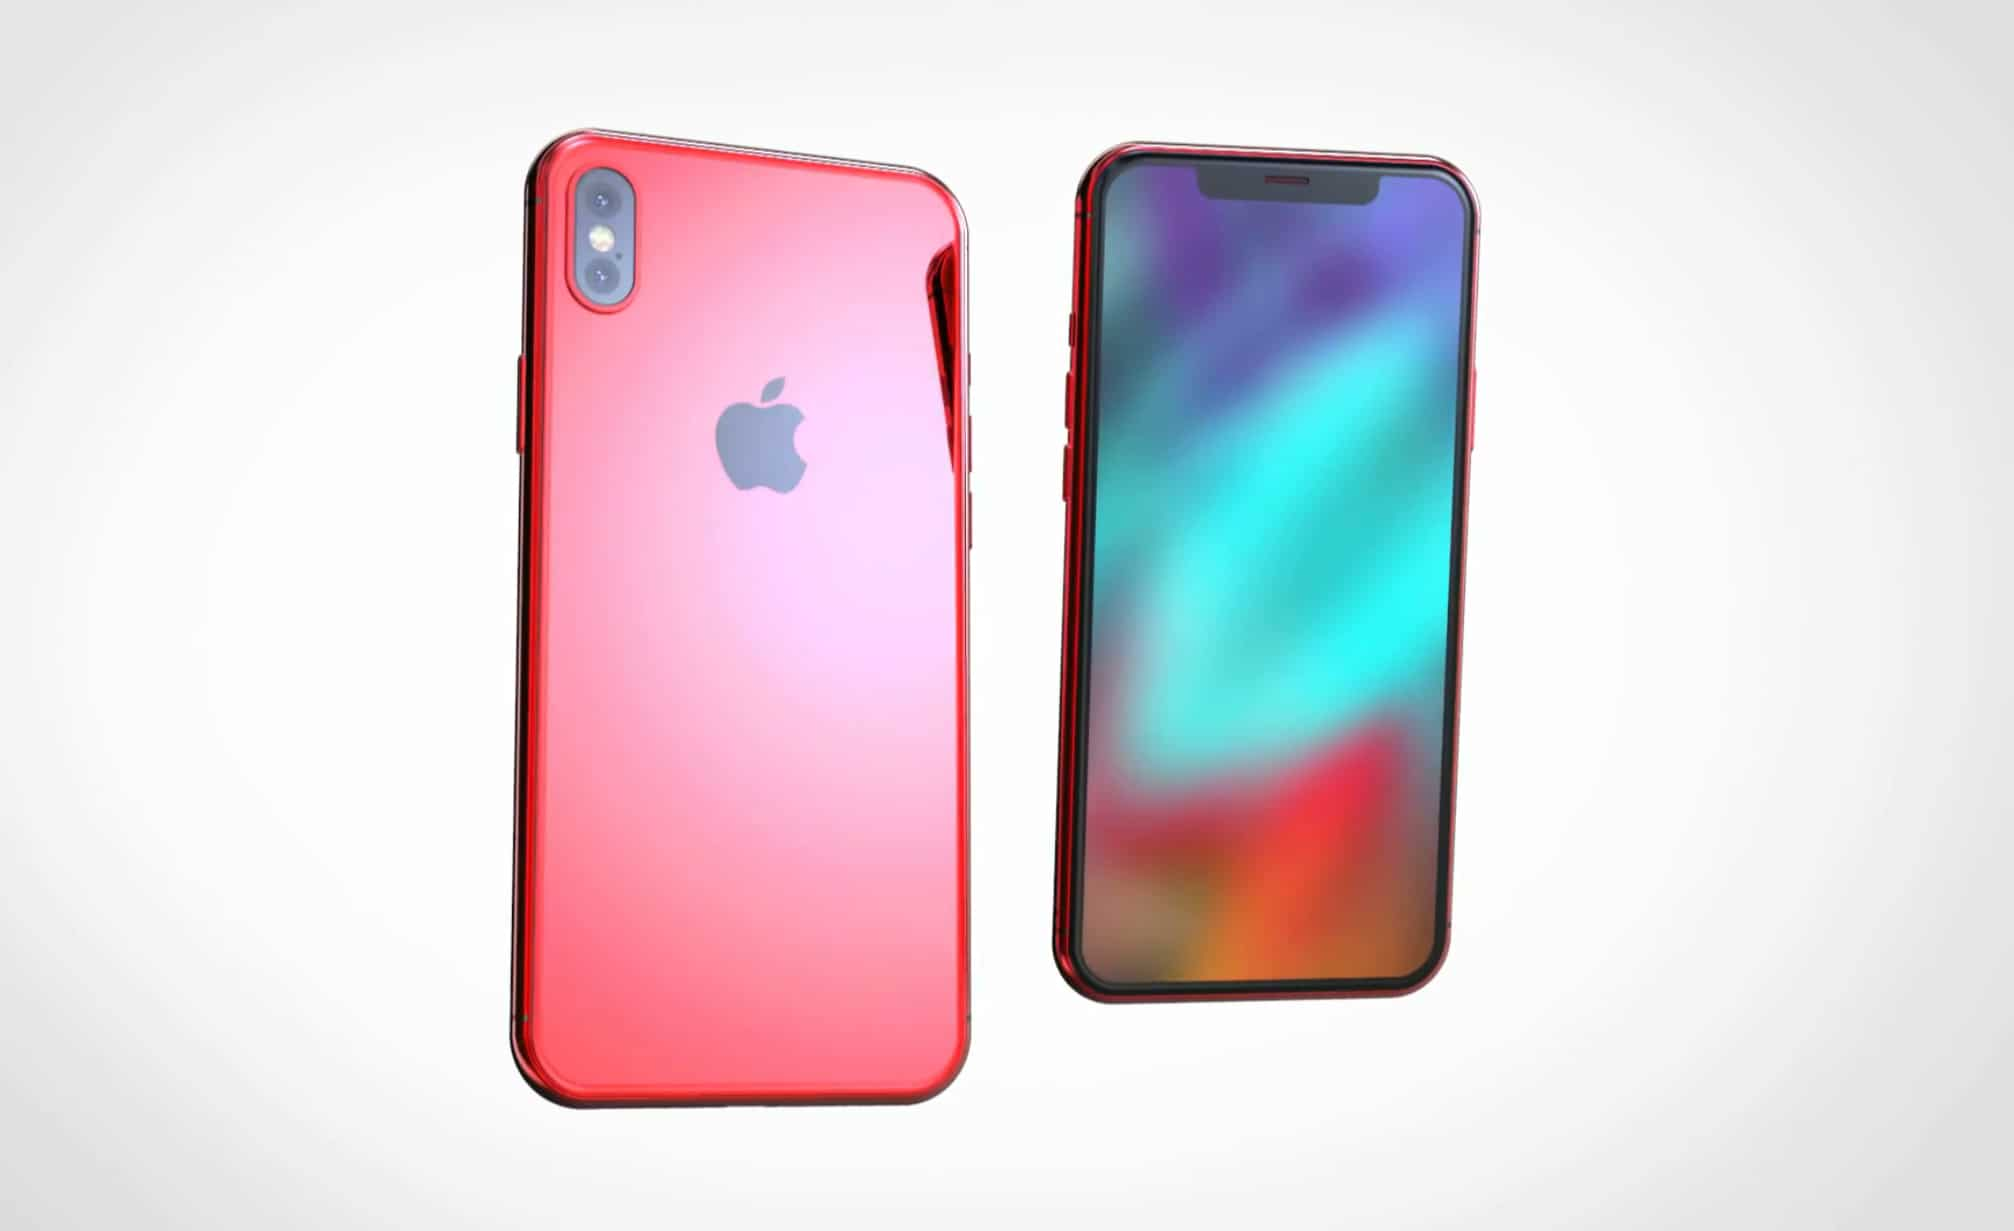 Iphone X Productred Foto Iphone X Rosso Iphone X Rosso